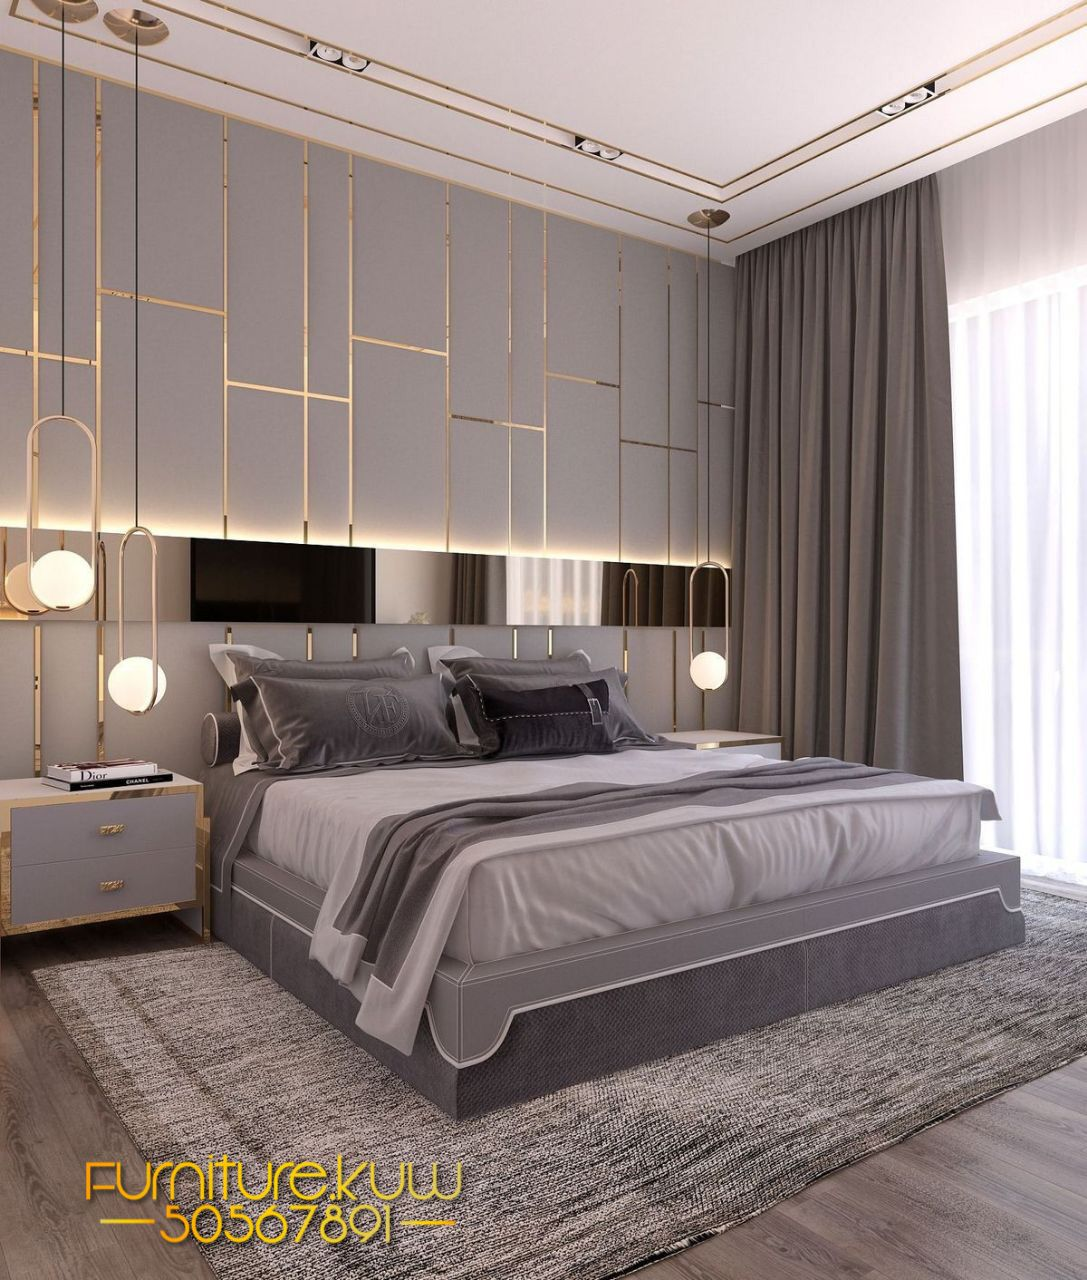 Pin By Furniture مفروشات On ستاير In 2020 Simple Bedroom Design Luxury Bedroom Master Modern Style Bedroom